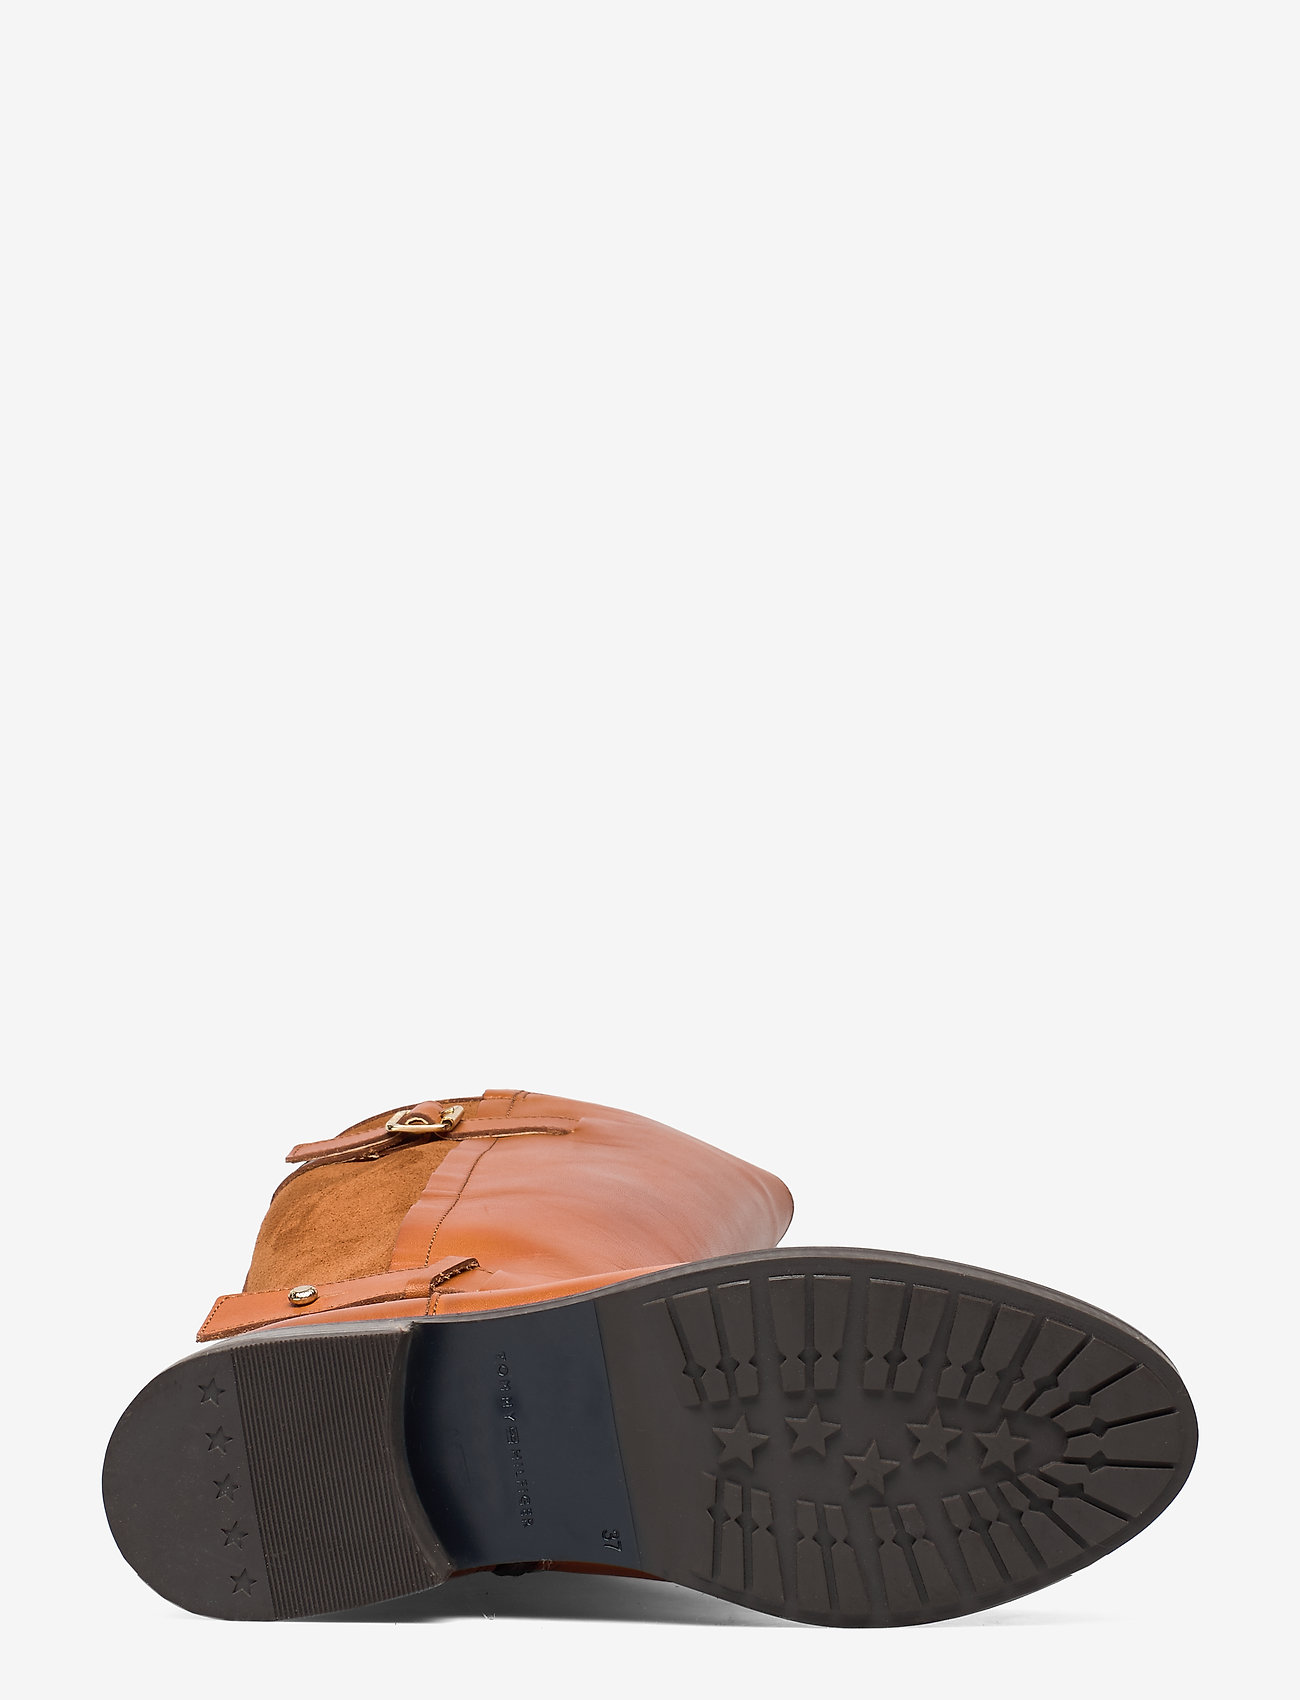 Modern Suede Longboot (Leather Brown) - Tommy Hilfiger